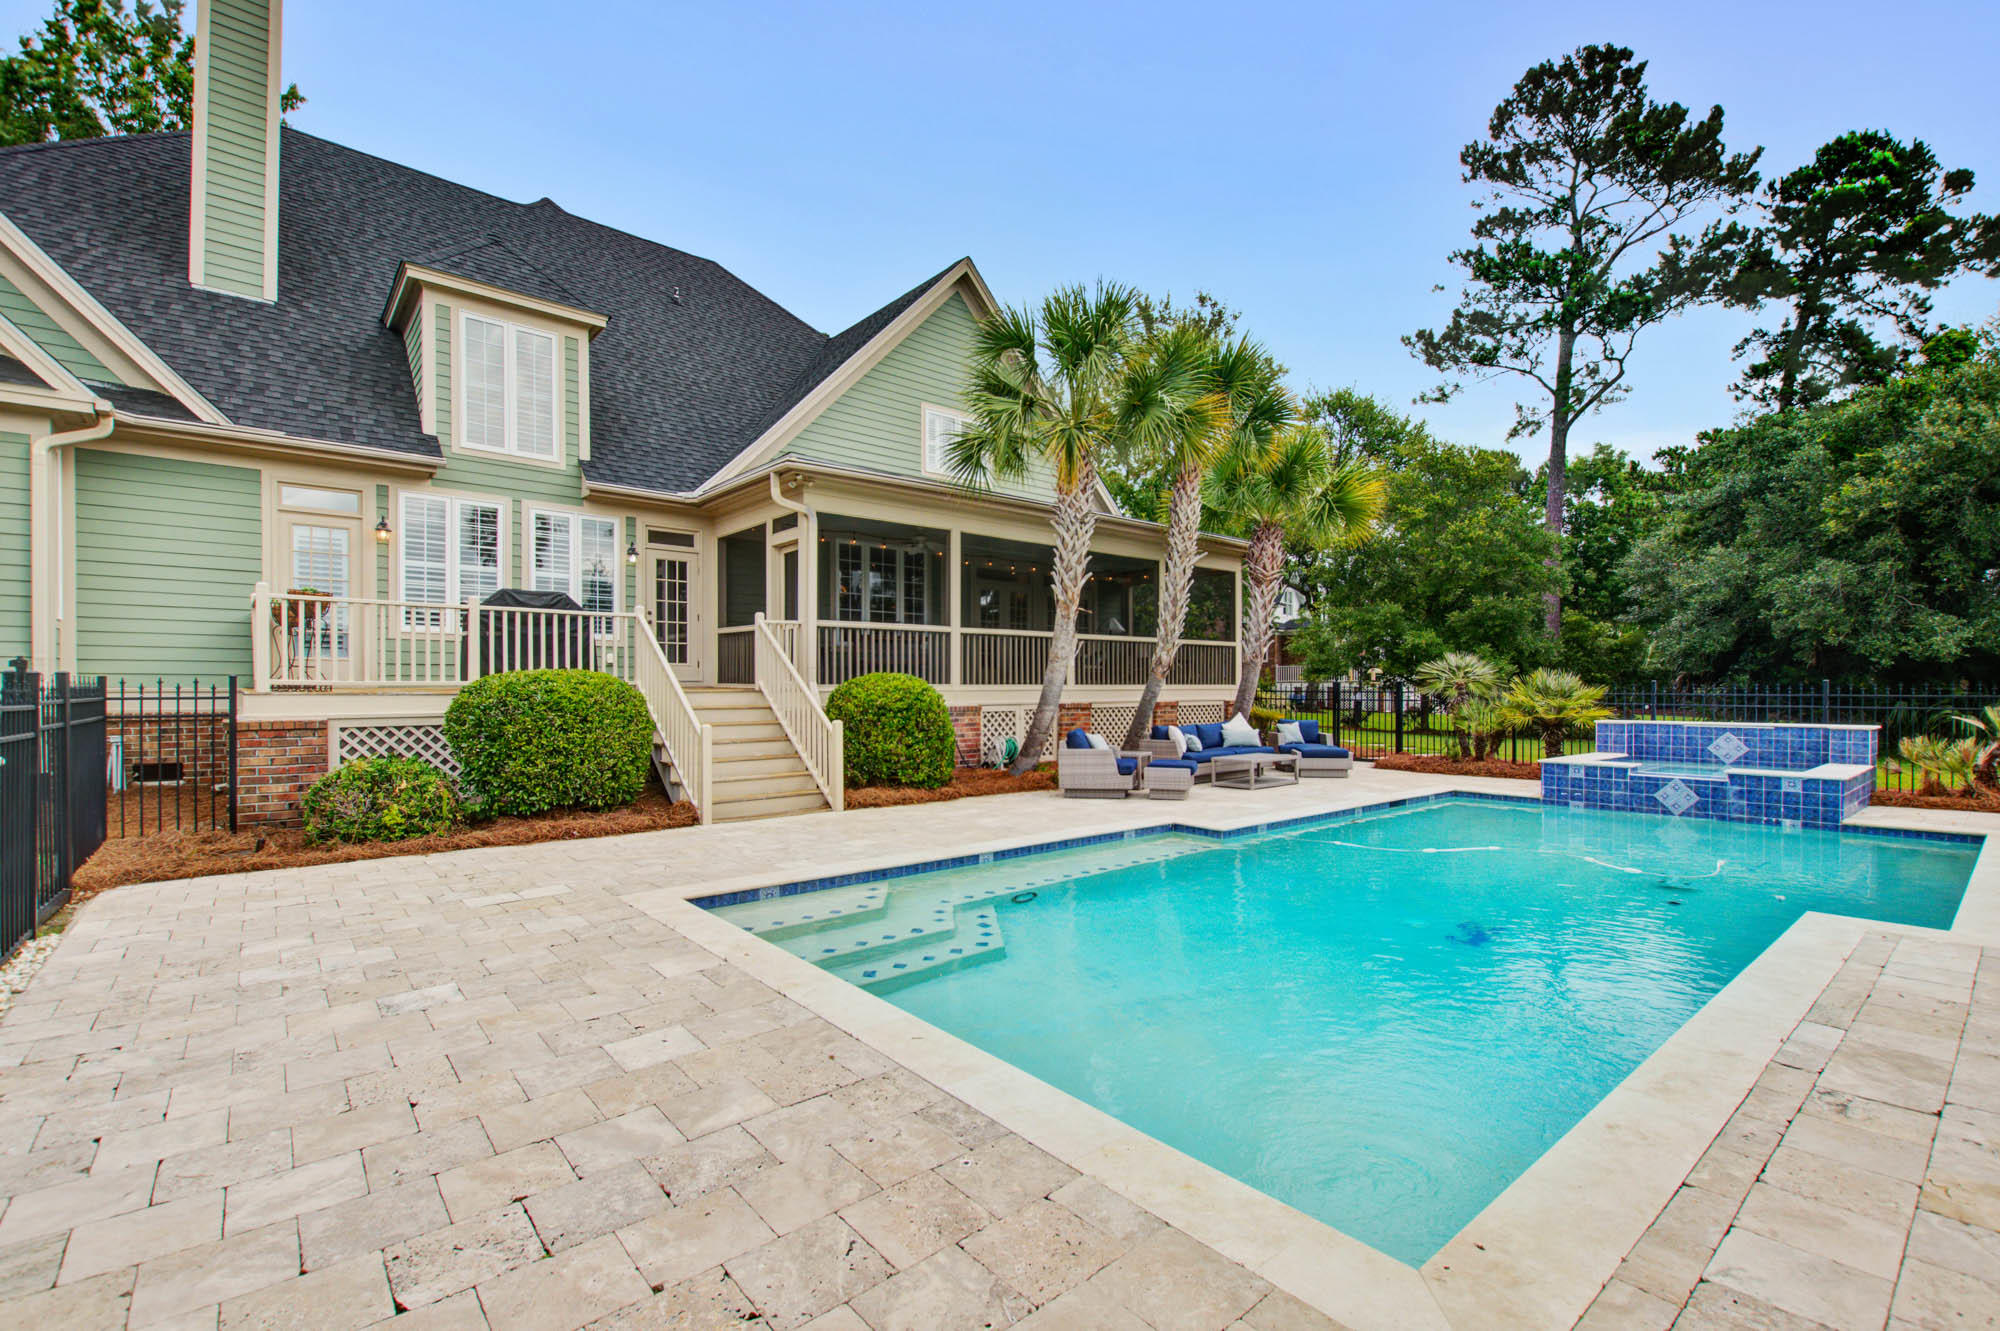 Dunes West Homes For Sale - 2069 Shell Ring, Mount Pleasant, SC - 15